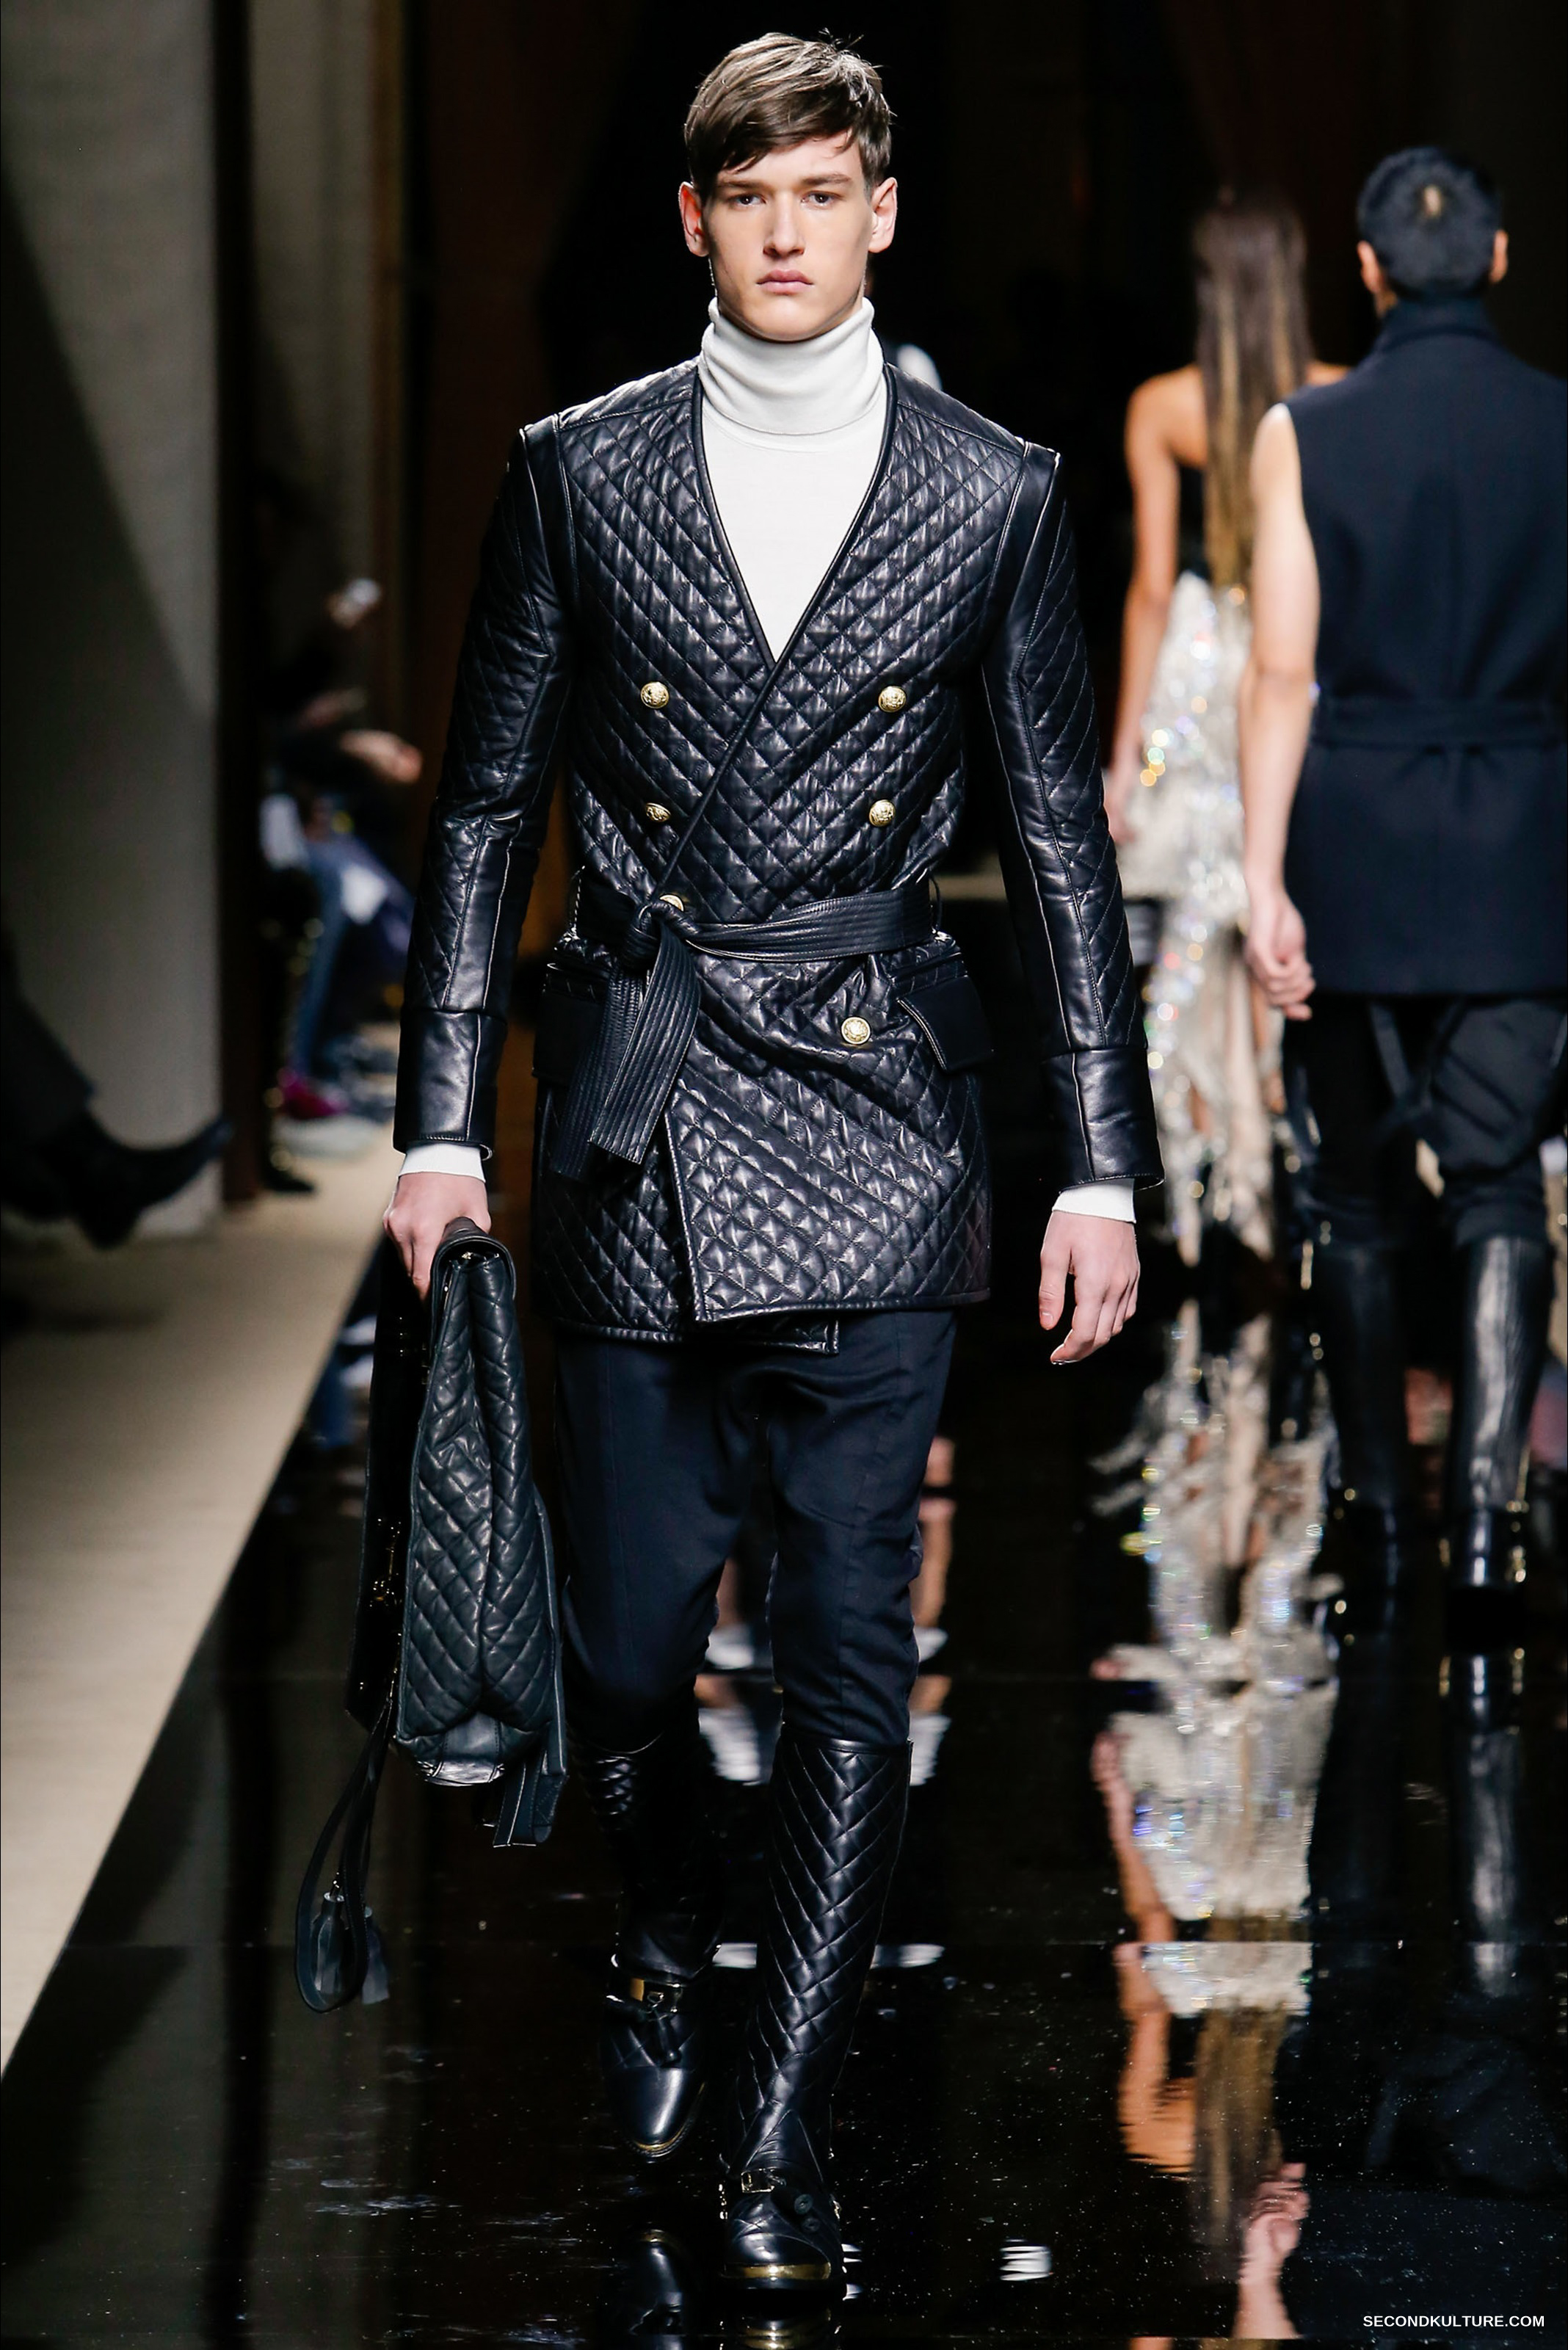 Balmain Fall Winter 2016 Menswear - Look 48/63